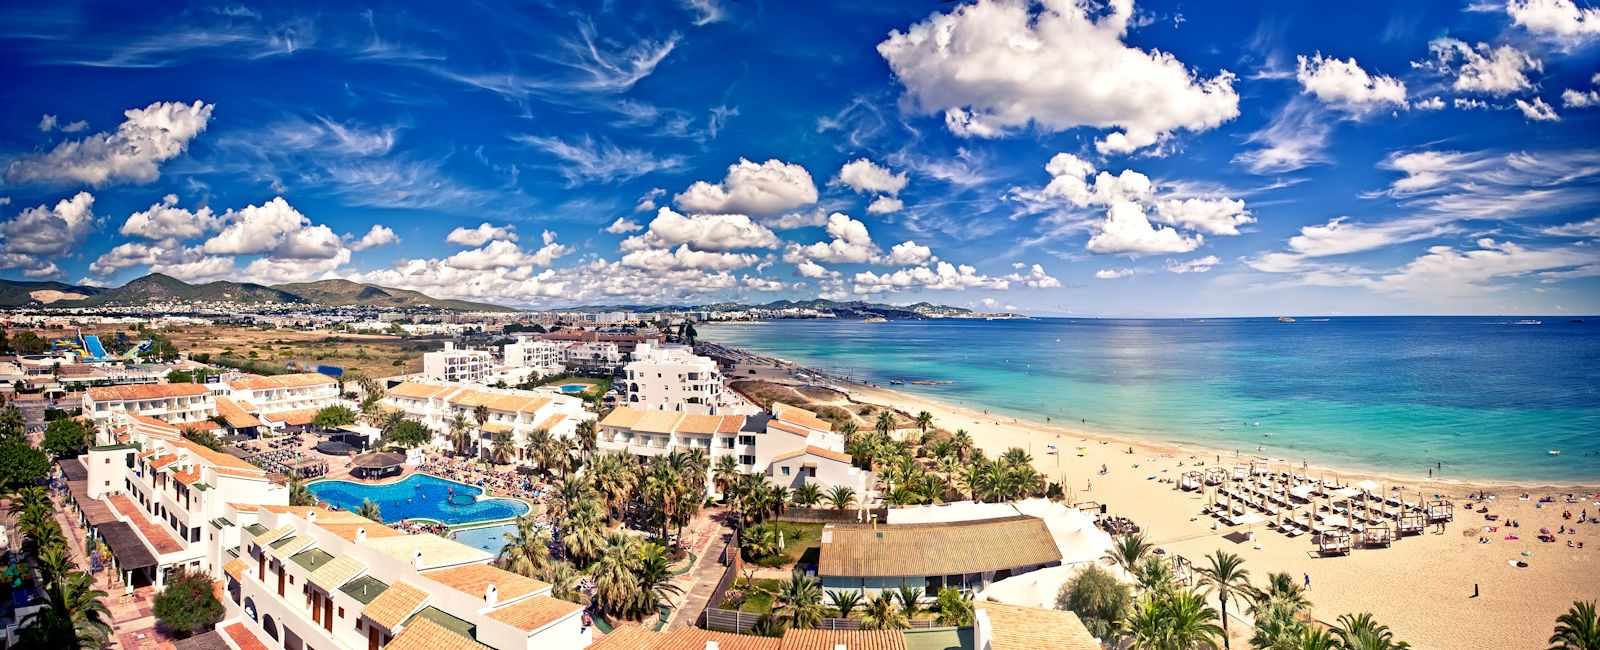 Luxury Playa d'en Bossa Holidays